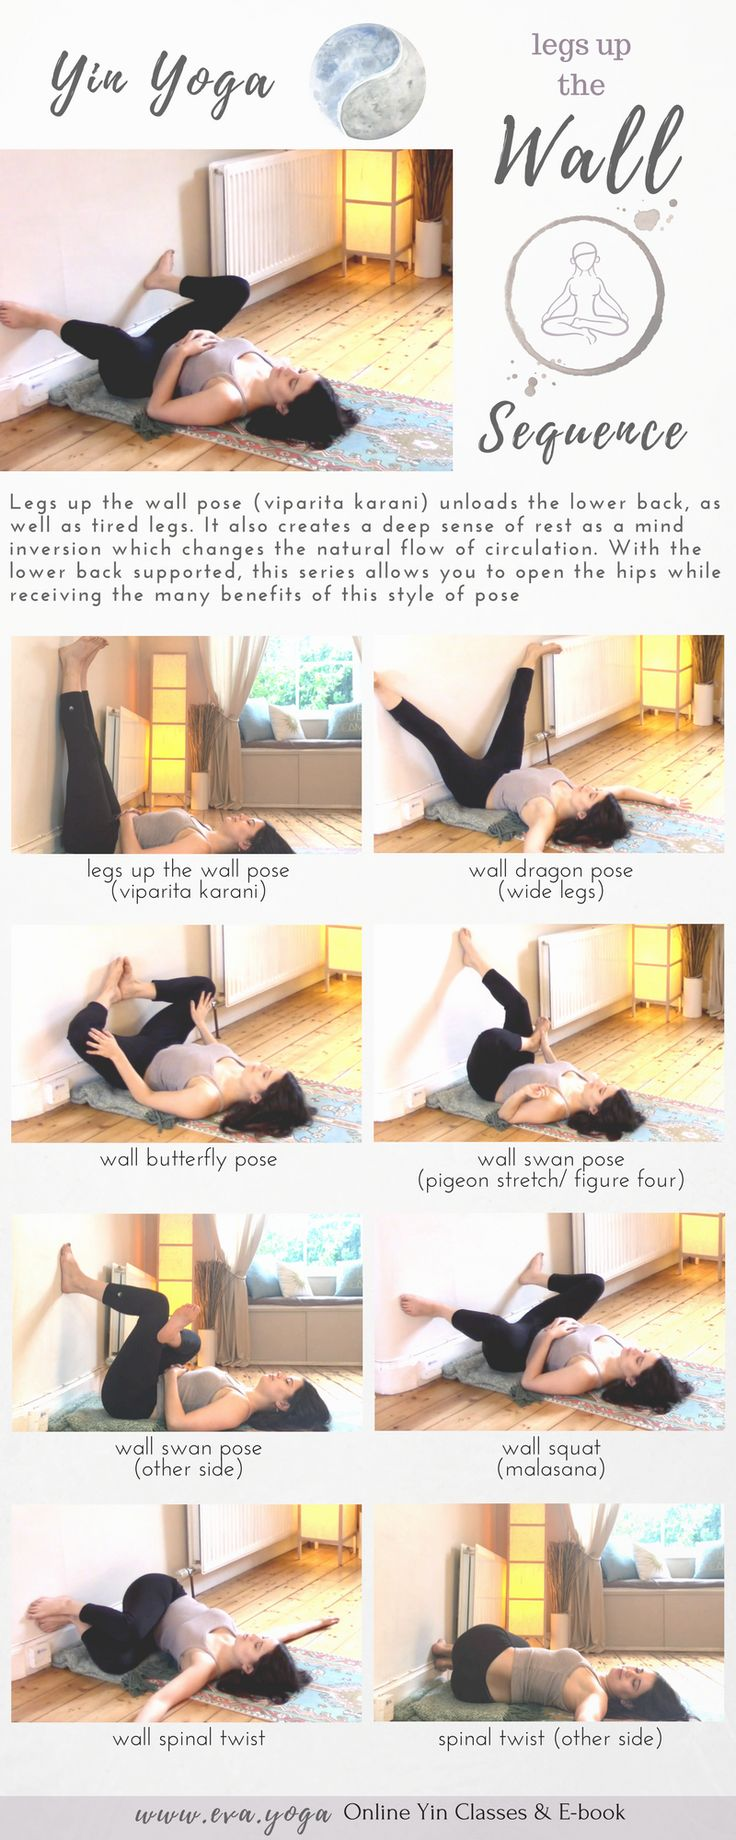 Yin Yoga Practice at the Wall! Grounding & restoring practice to stretch connective tissue & release stress. Class Theme & Sequence Yin Yoga sequences & inspiration for teachers & students! Online classes & ebook available now: https://www.eva.yoga/writing-resources https://app.namastream.com/#/evayoga/product/1983/recordings  www.eva.yoga